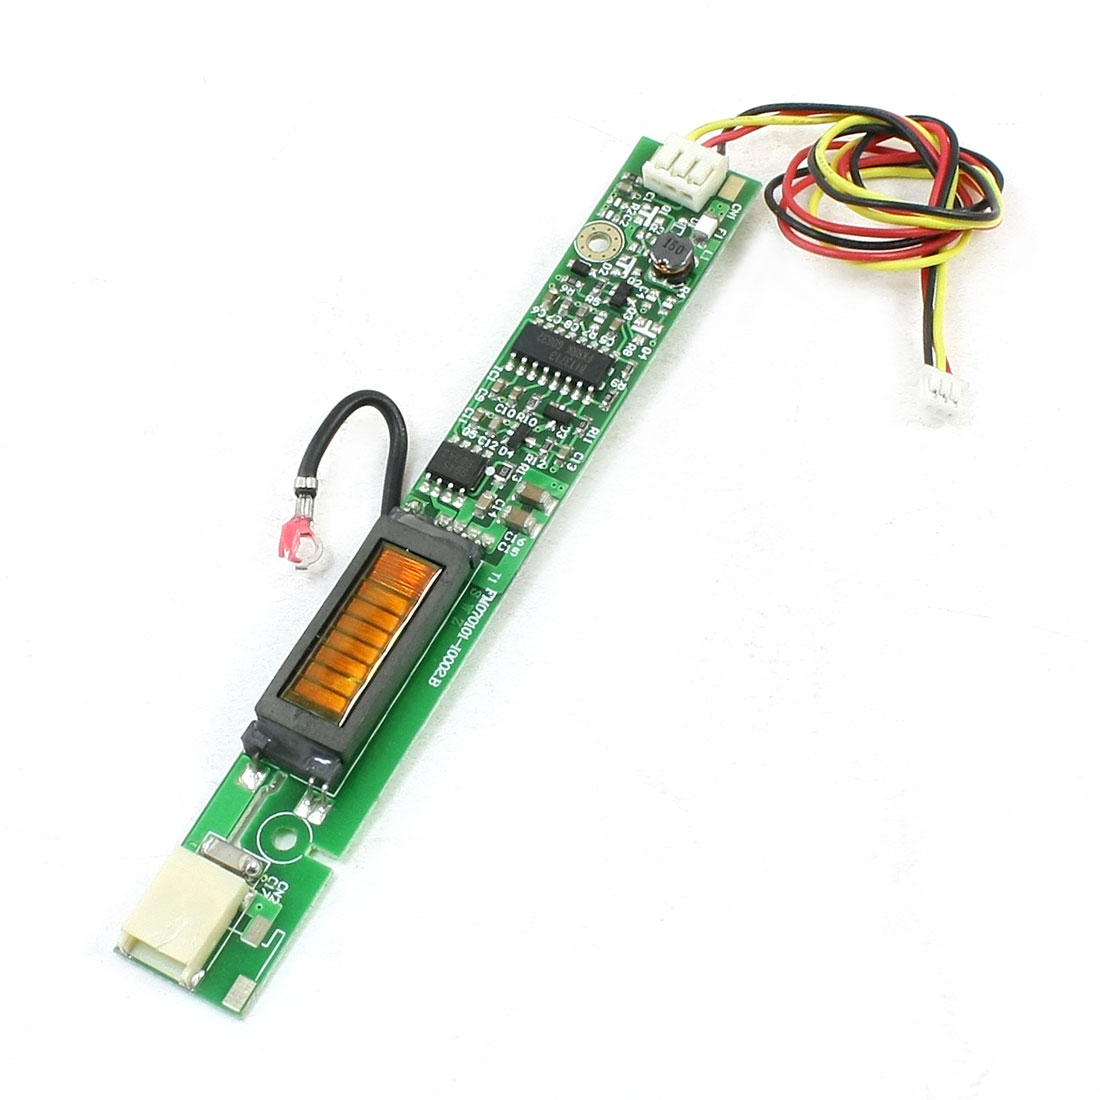 5V to 19V LCD Monitor Universal LCD Inverter Board for PC Notebook